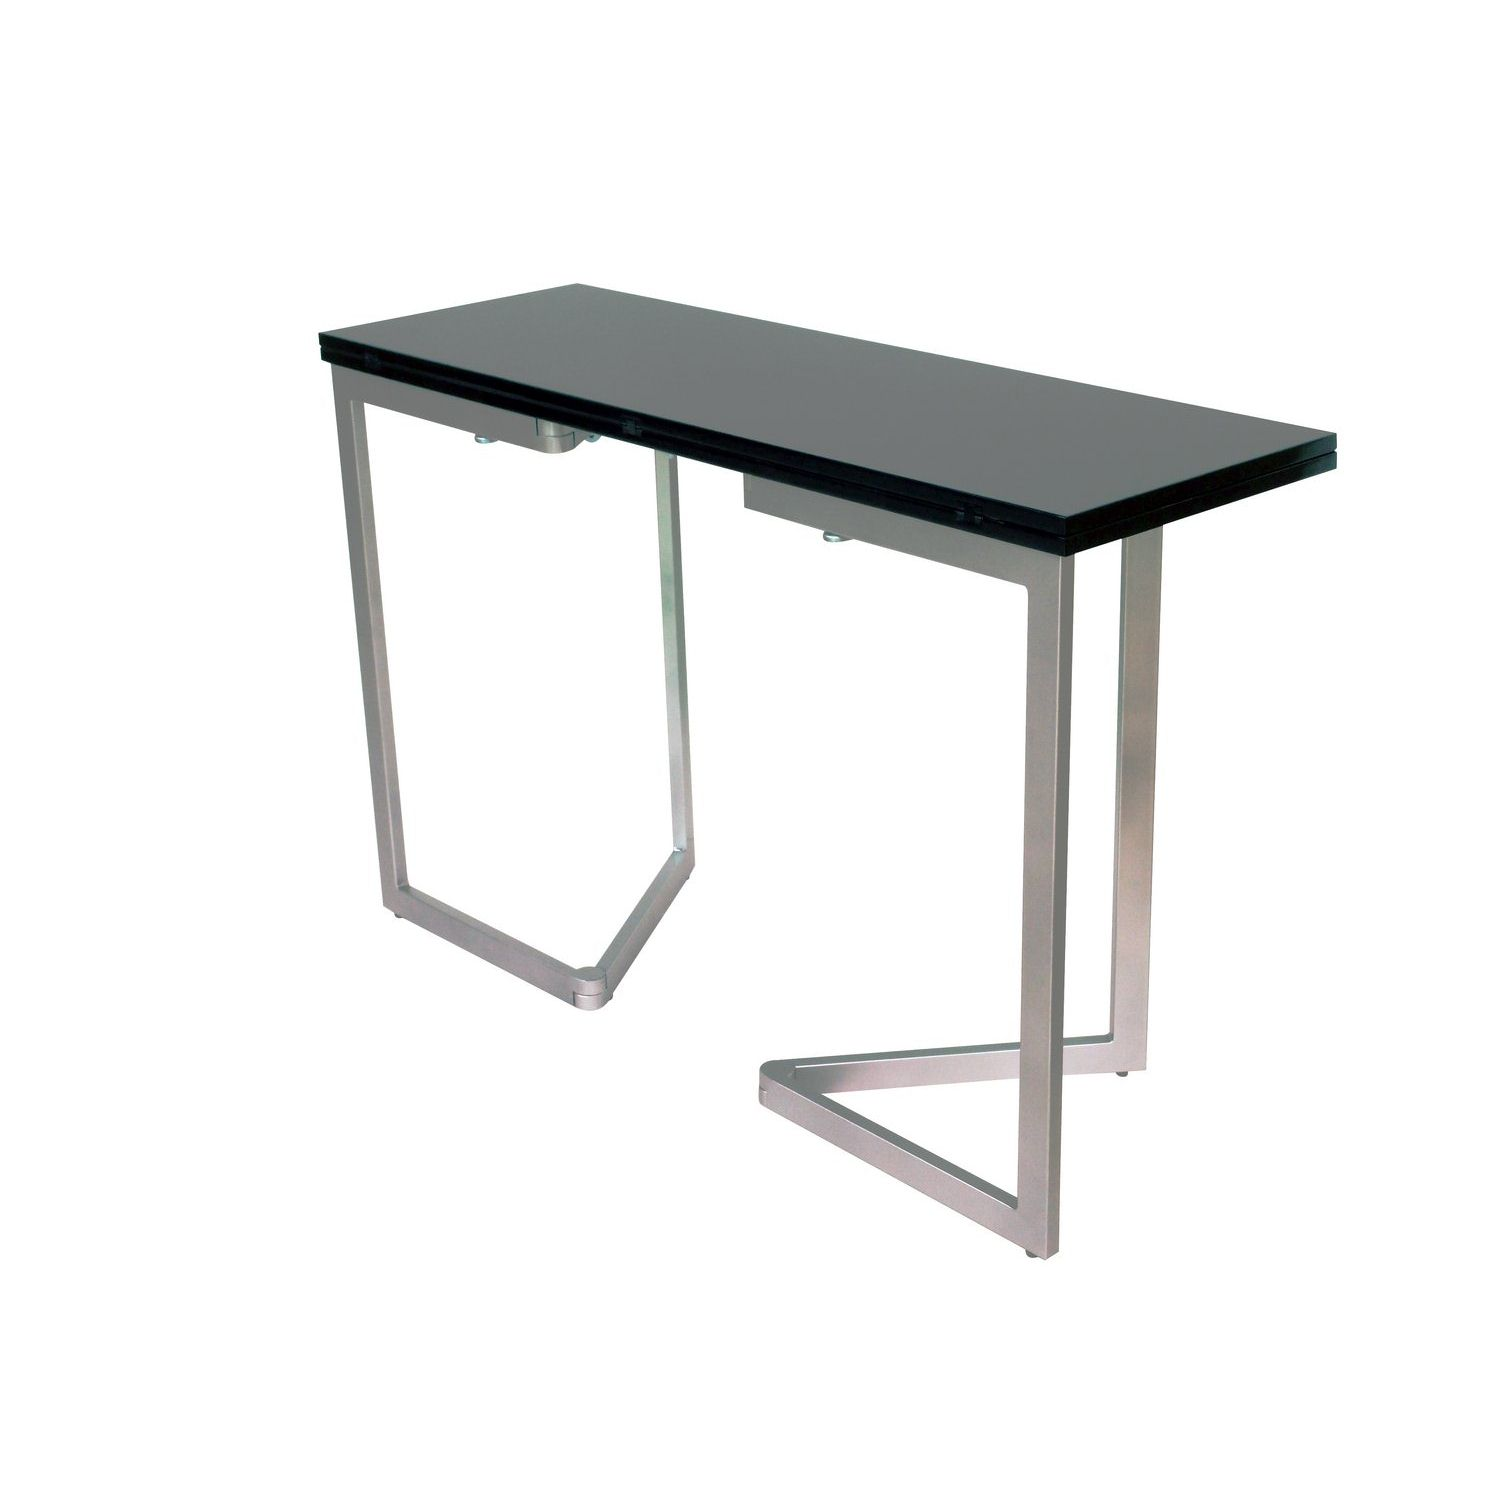 deco in paris table console extensible noire laquee. Black Bedroom Furniture Sets. Home Design Ideas